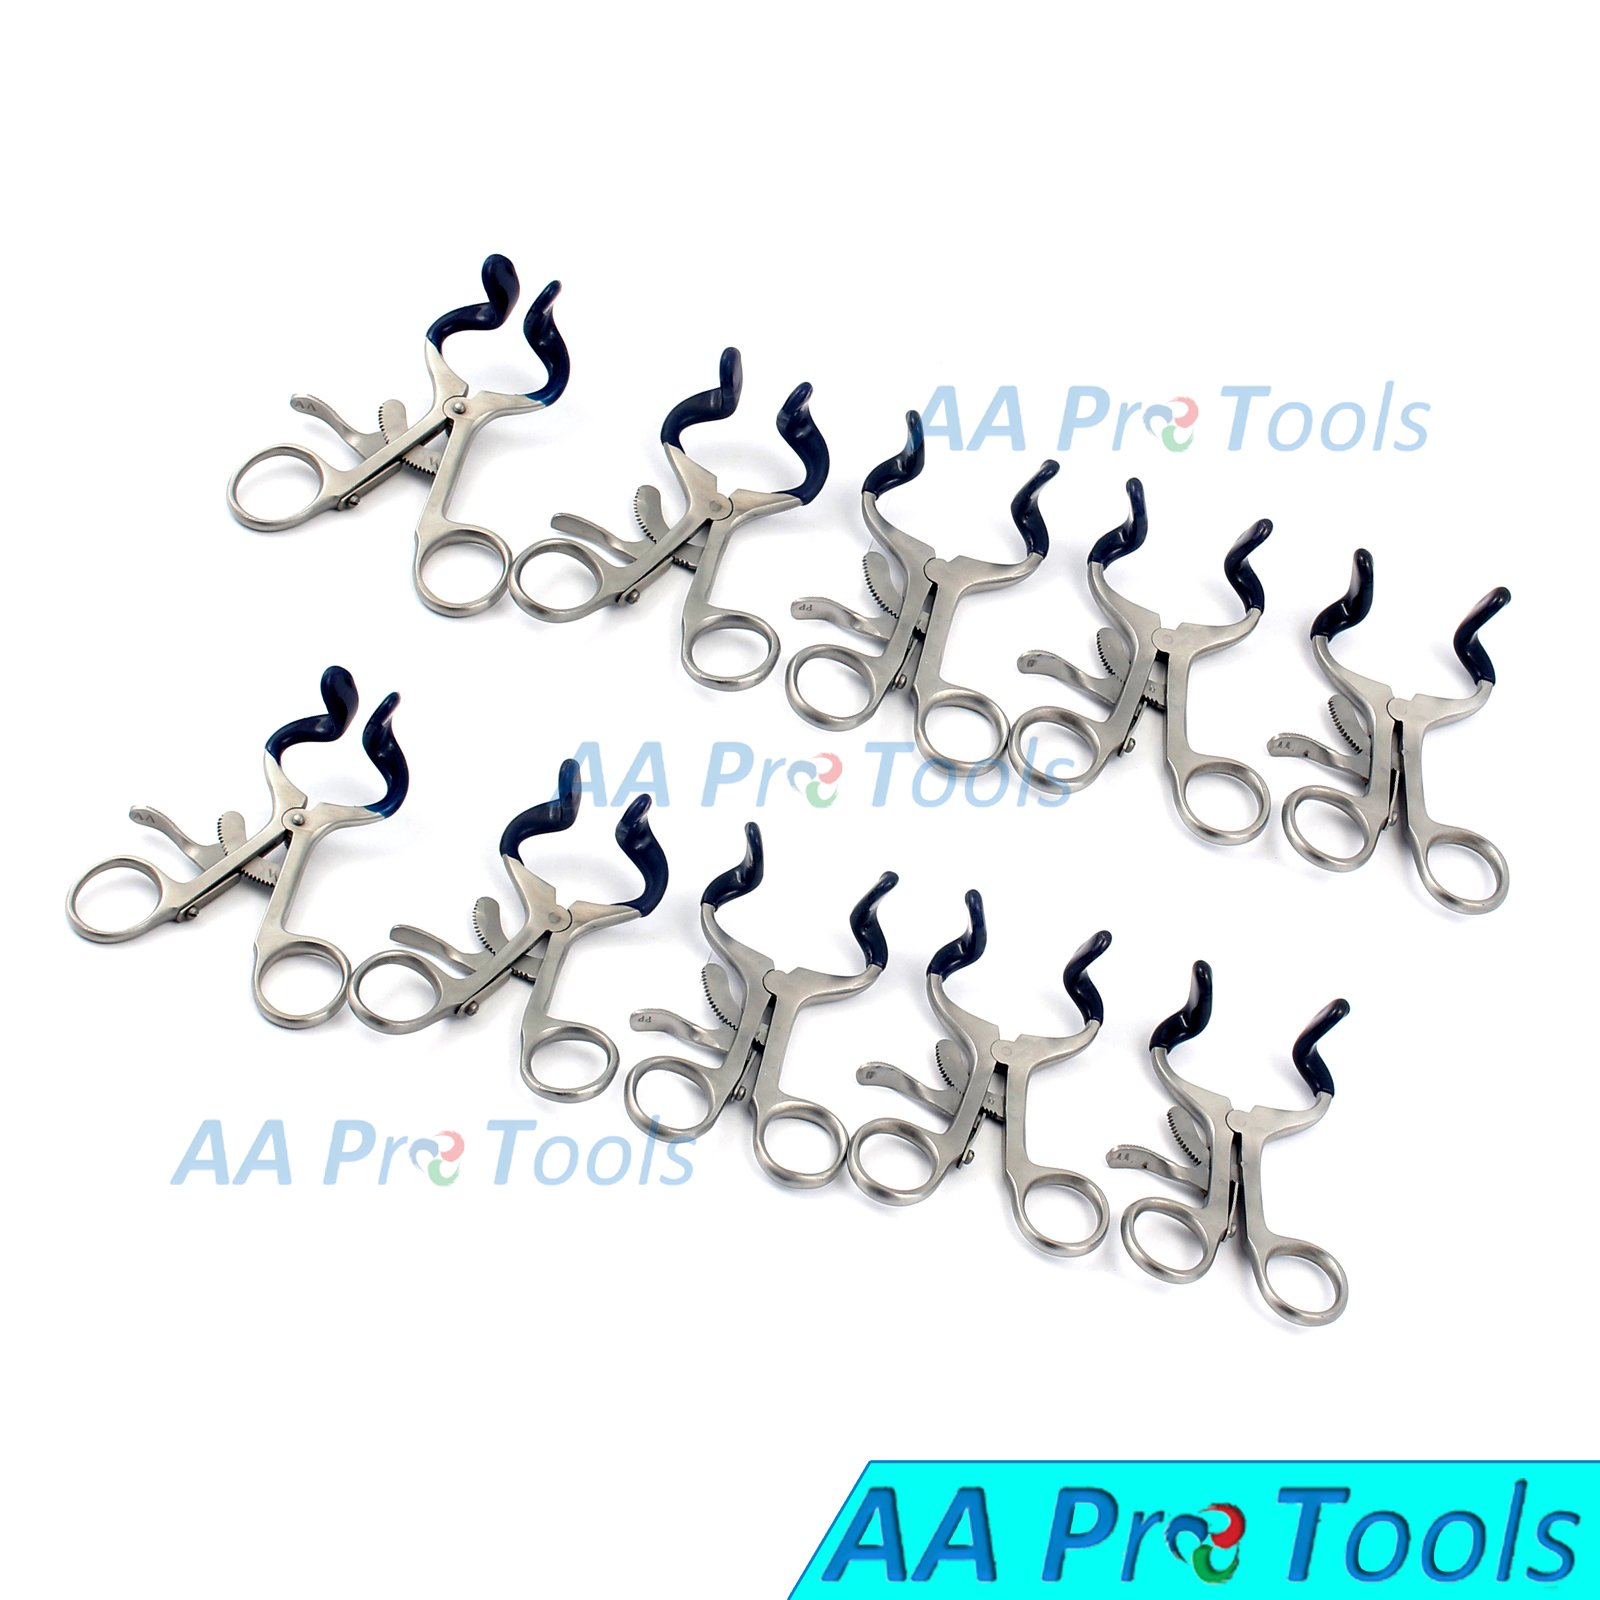 AAPROTOOLS NEW SET OF 10 PCS O.R GRADE MOLT MOUTH GAG BLUE 3.5'' DENTAL INSTRUMENT WITH SILICONE A+ QUALITY